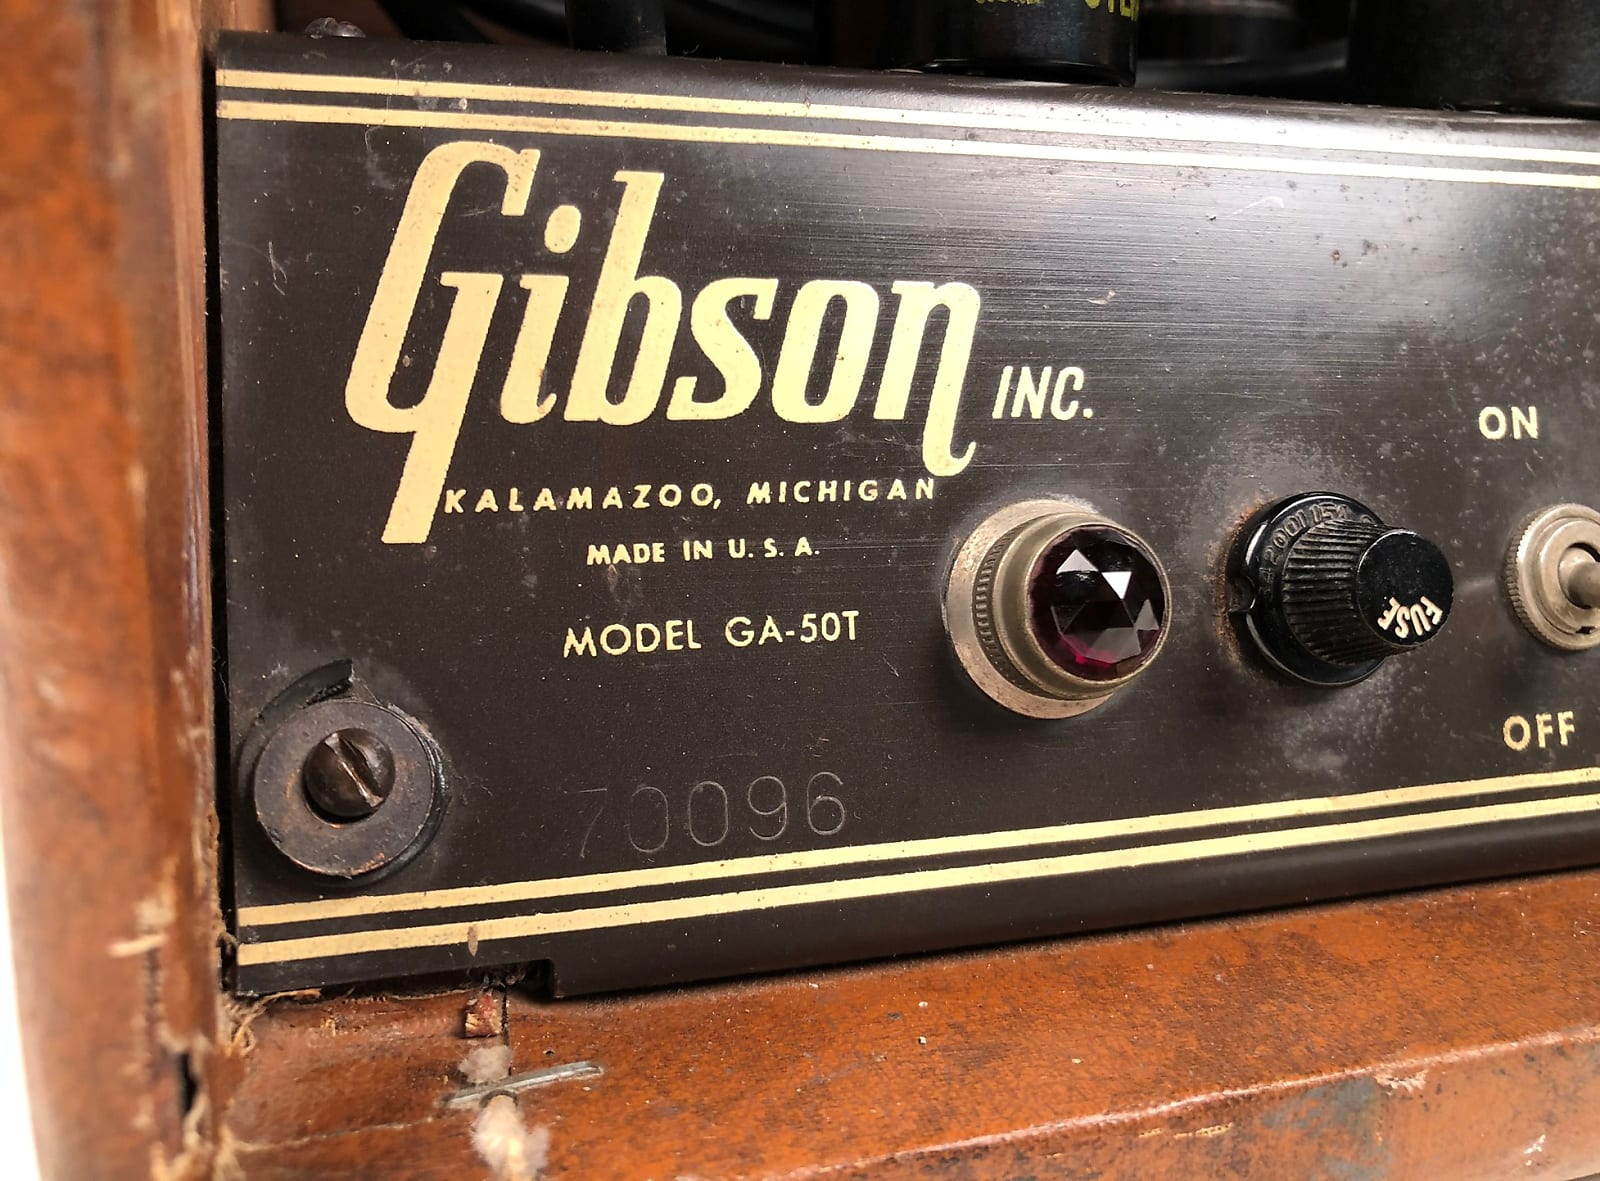 One Owner 1954 Gibson Console Grande Double 8 Steel with Matching Gibson GA-50T Amp